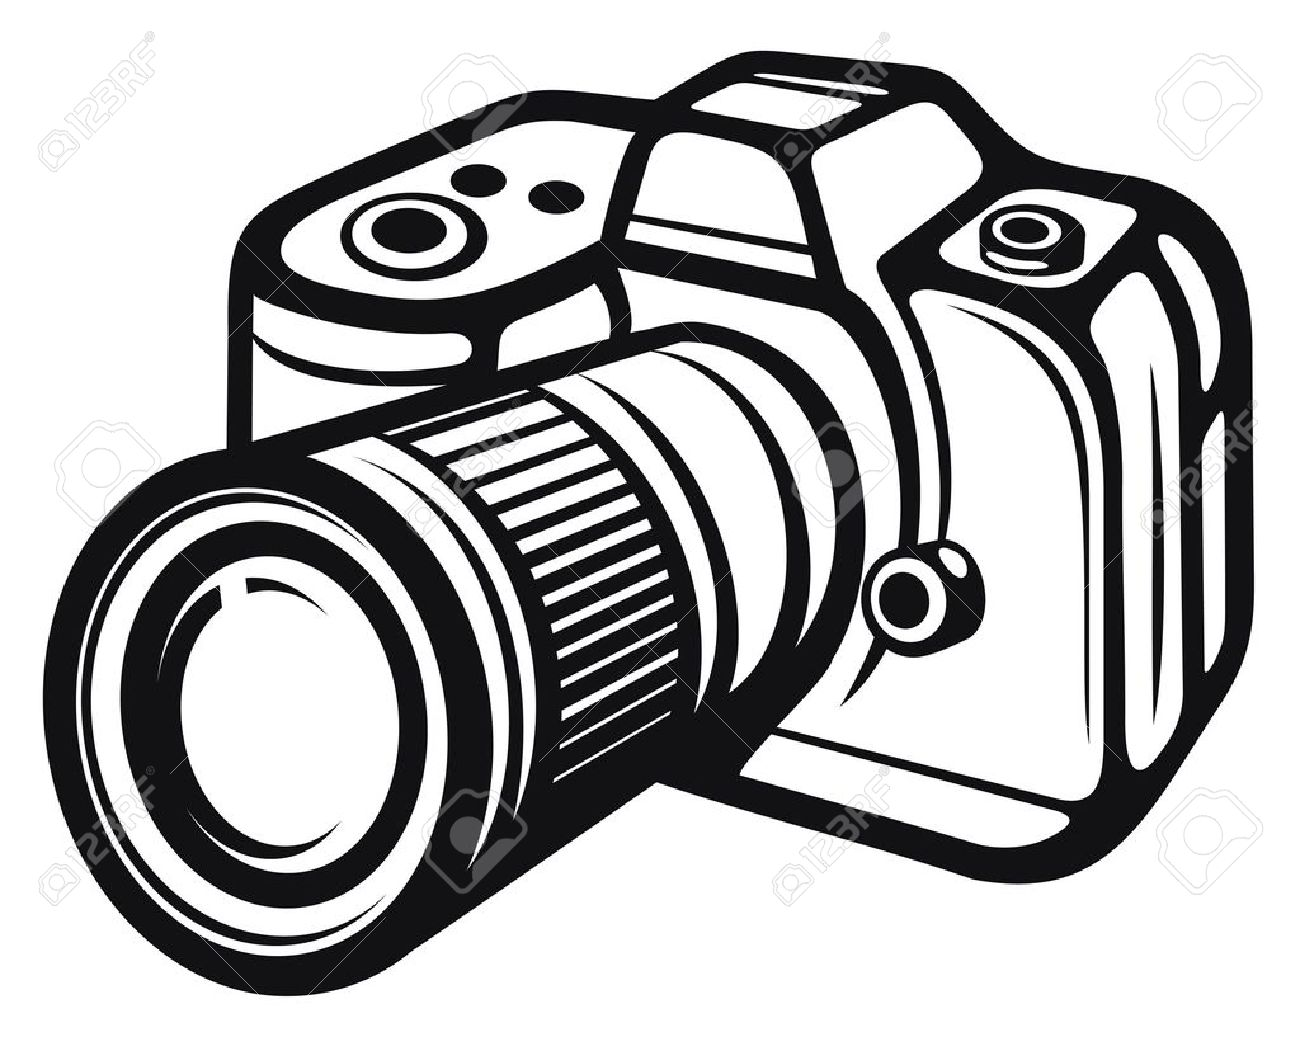 Compact digital camera digital photo camera Stock Vector - 14836243